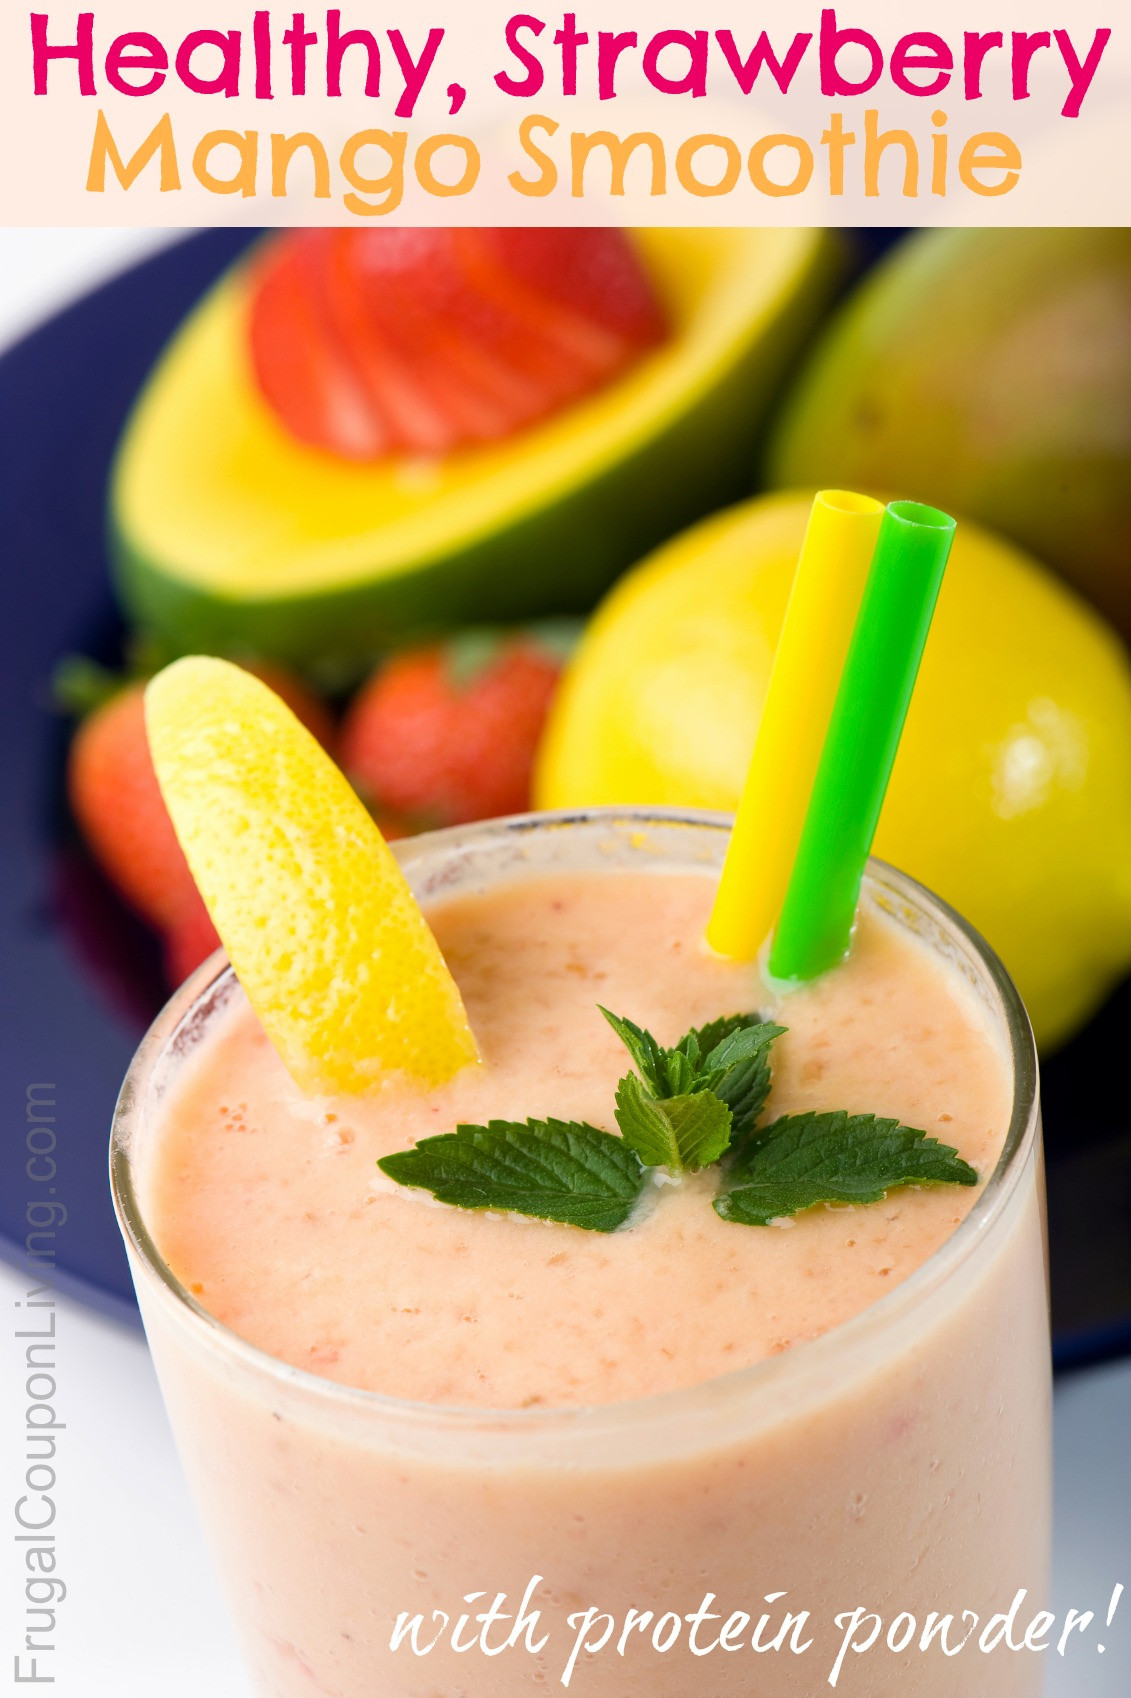 Healthy Juice Smoothies  Healthy Strawberry Mango Smoothie Recipe with Protein Powder